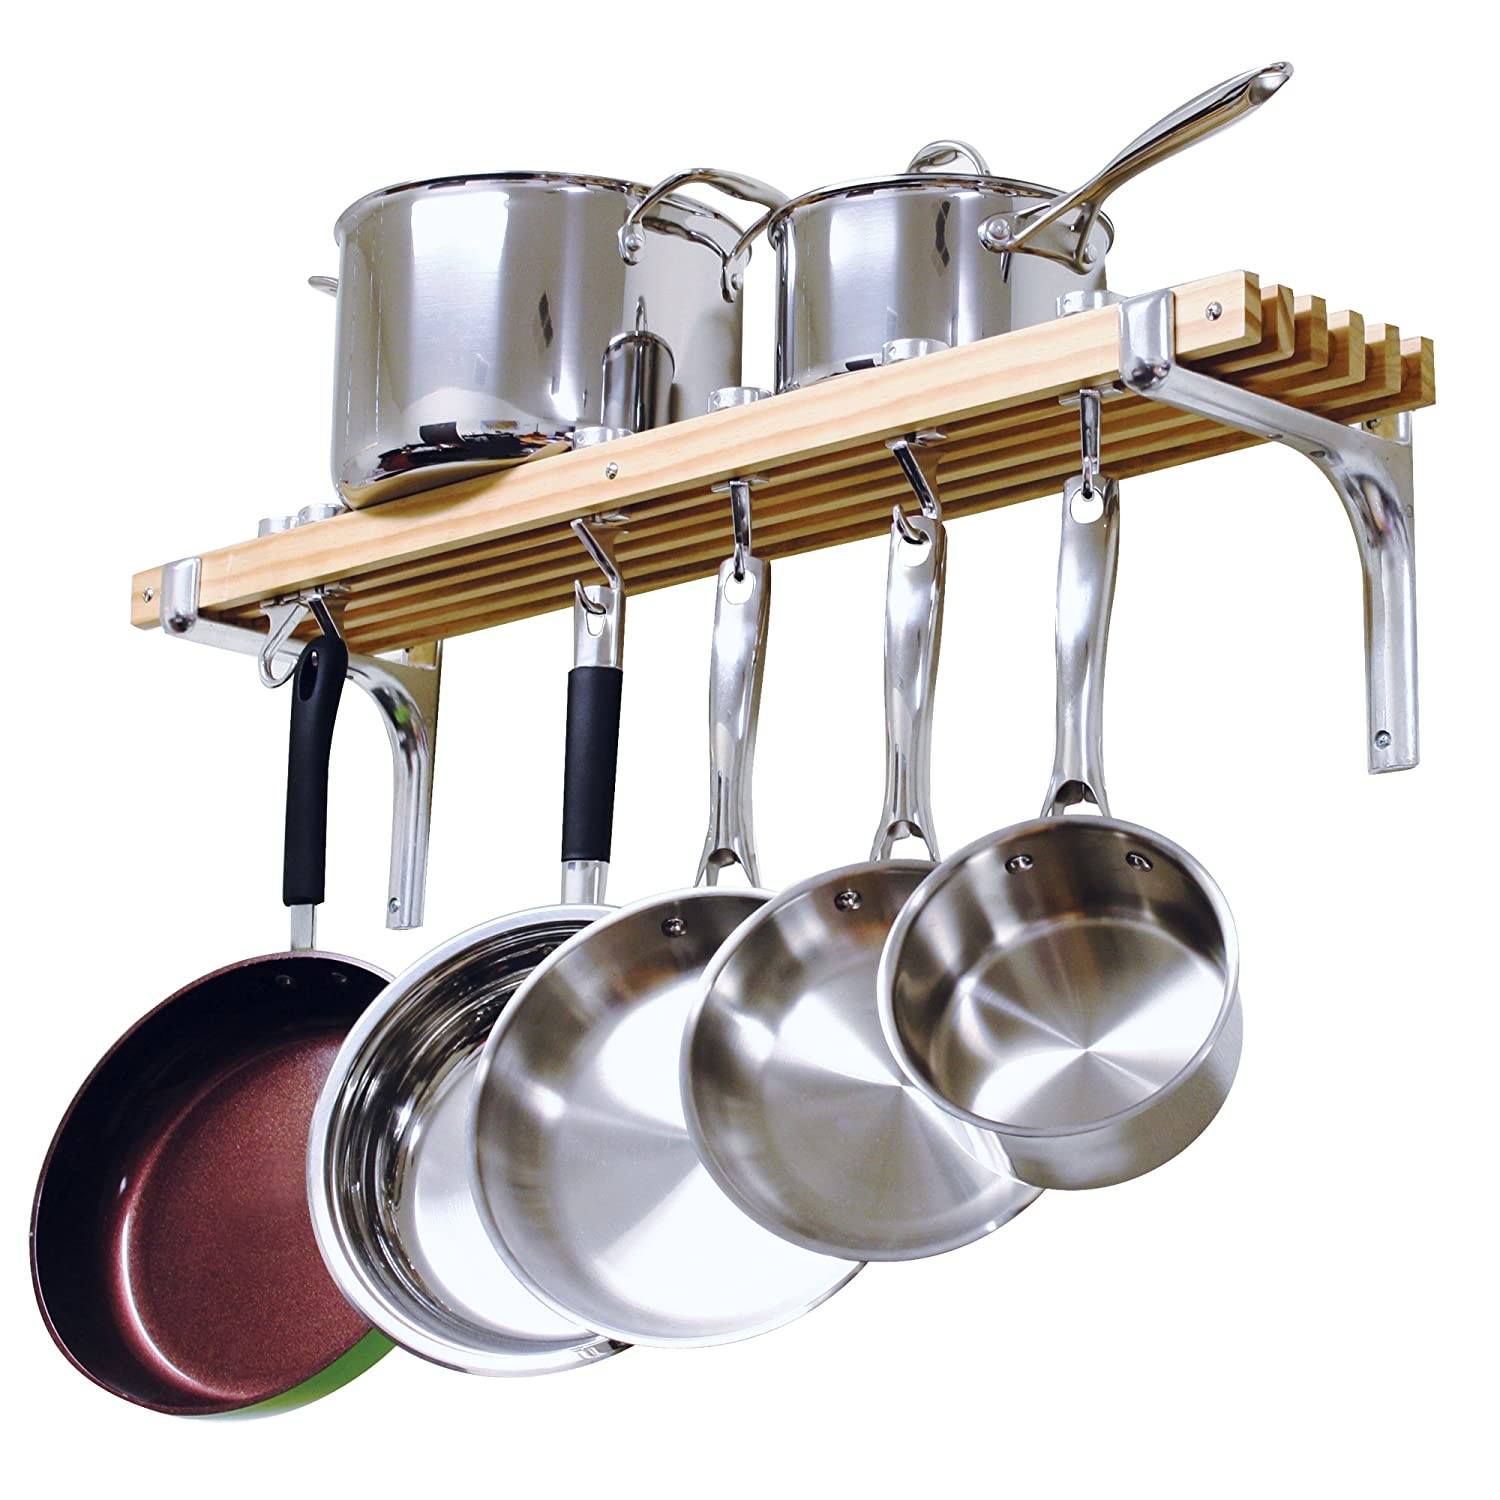 Cooks Standard Wall Mount Pot Rack 36 by 8 Inch Amazon